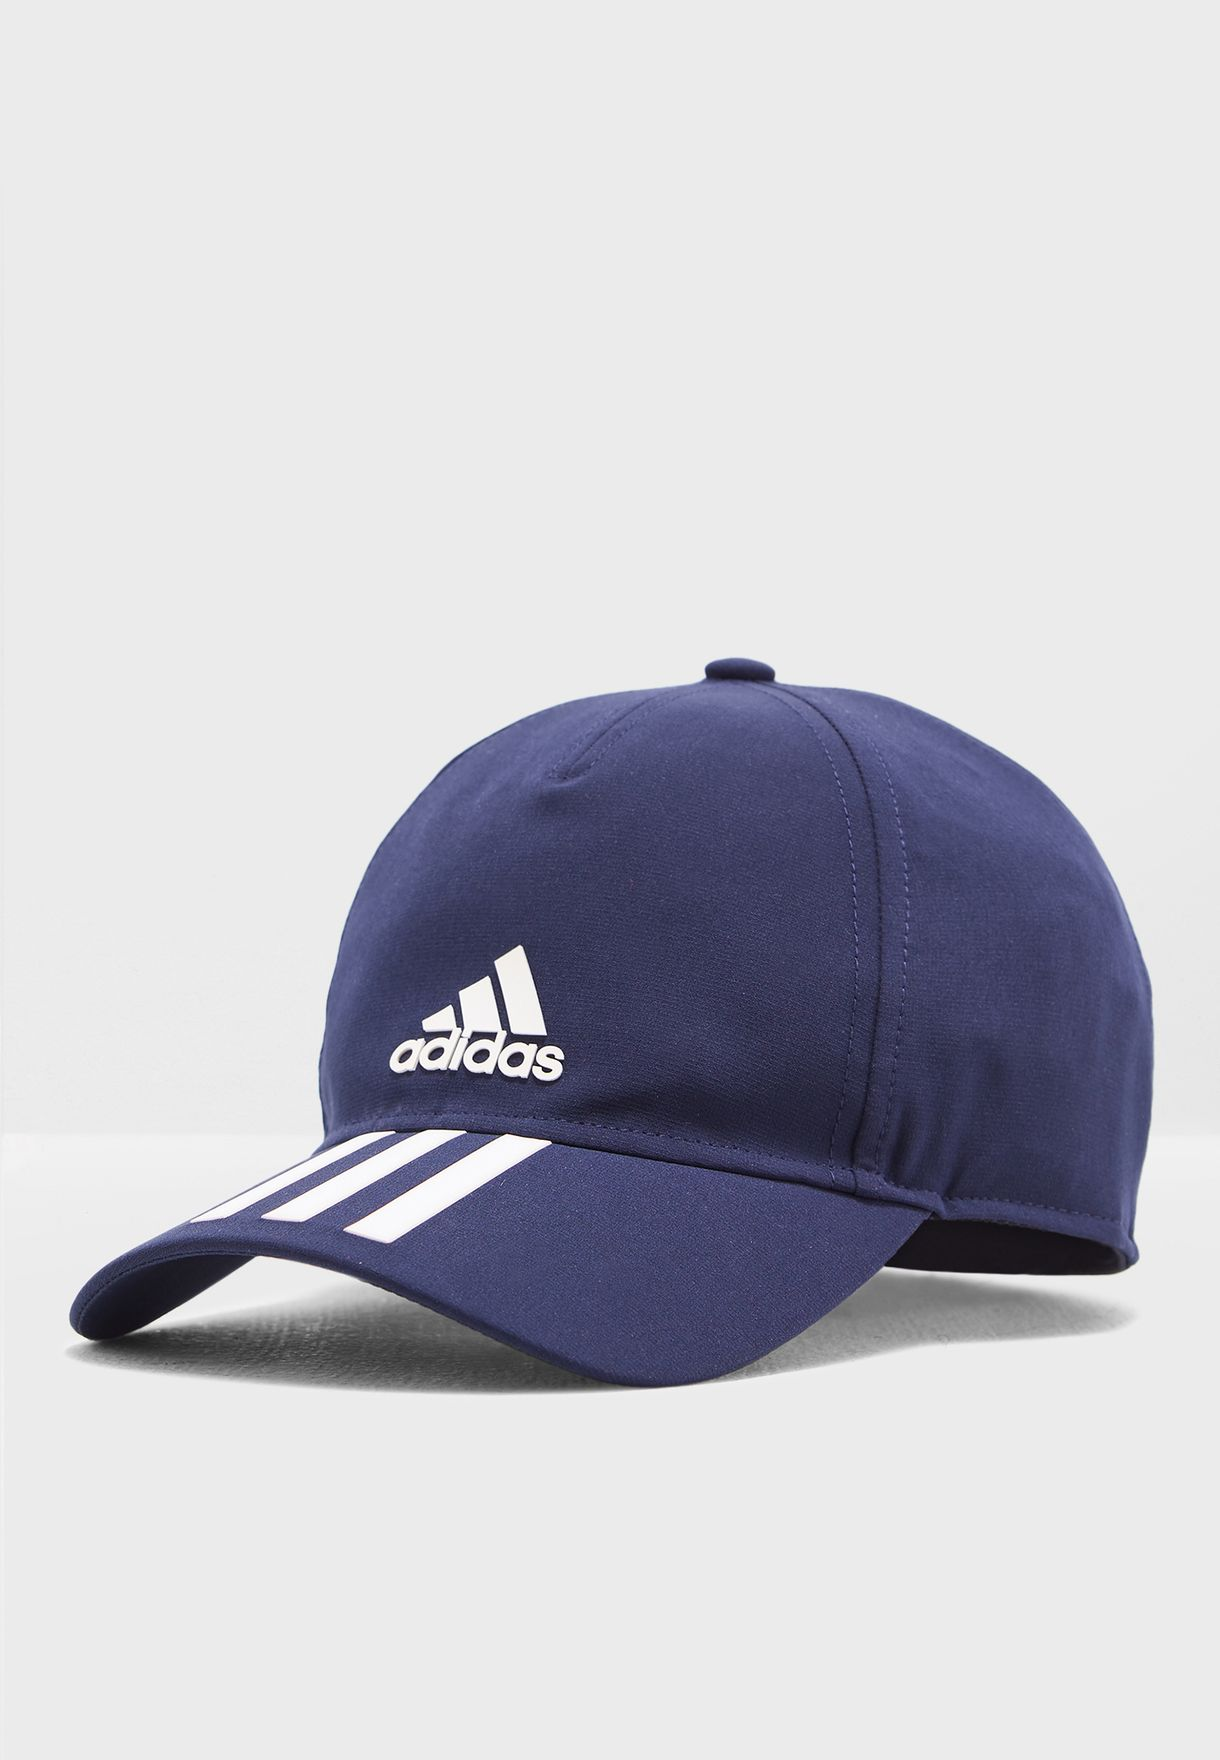 a9539a66e2f Shop adidas navy C40 6 Panel 3 Stripe Climalite Cap DT8543 for Men in Saudi  - 14448AC65FNP